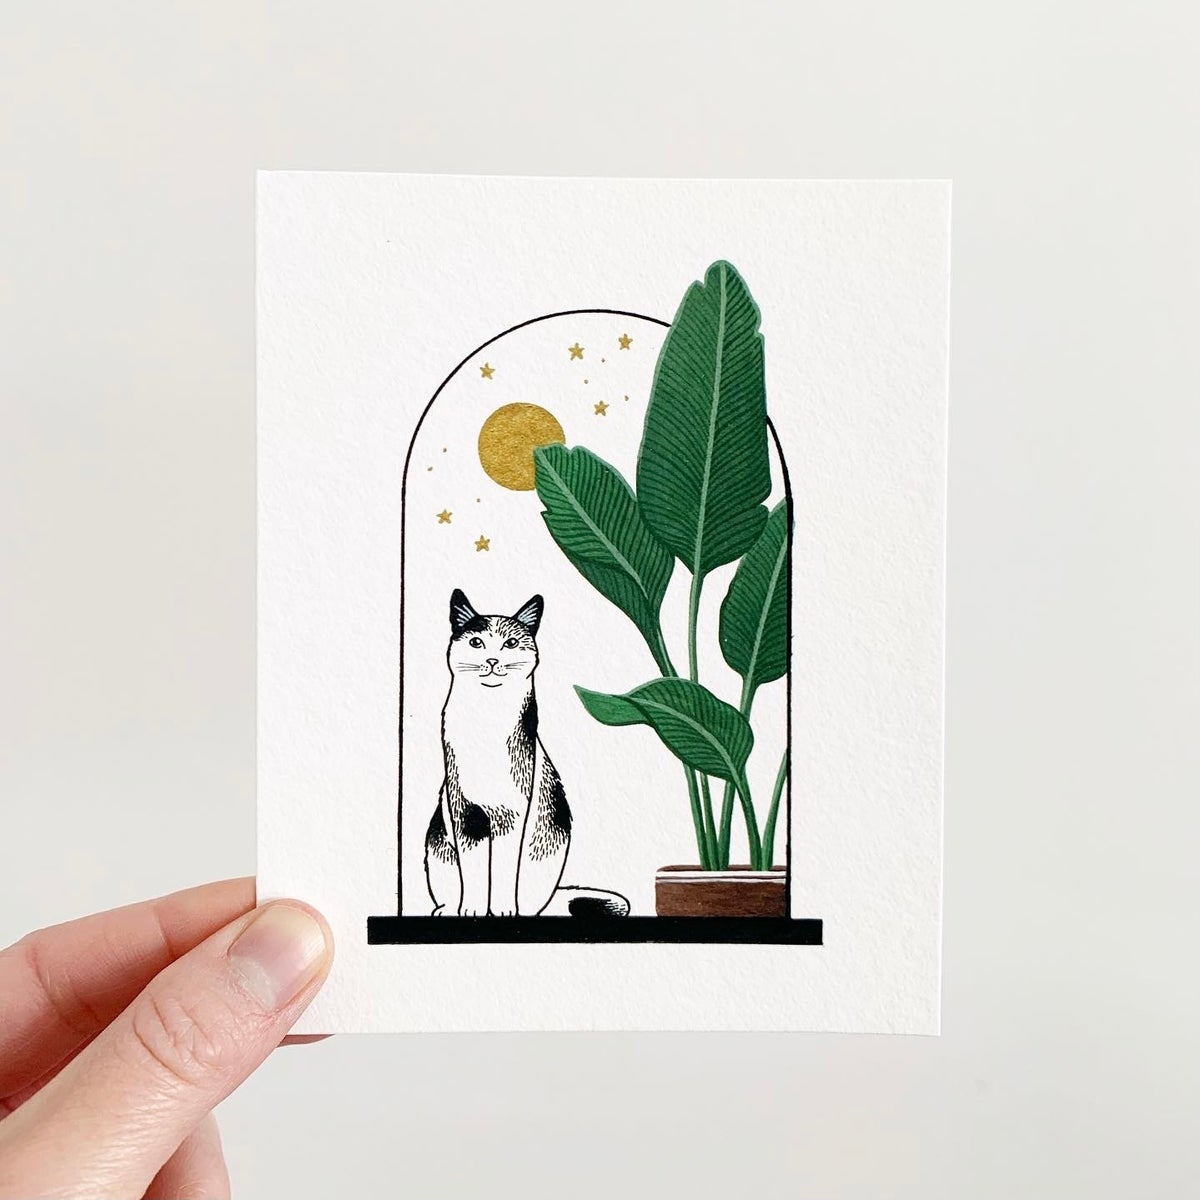 Image of Cats + Plants: White Bird of Paradise